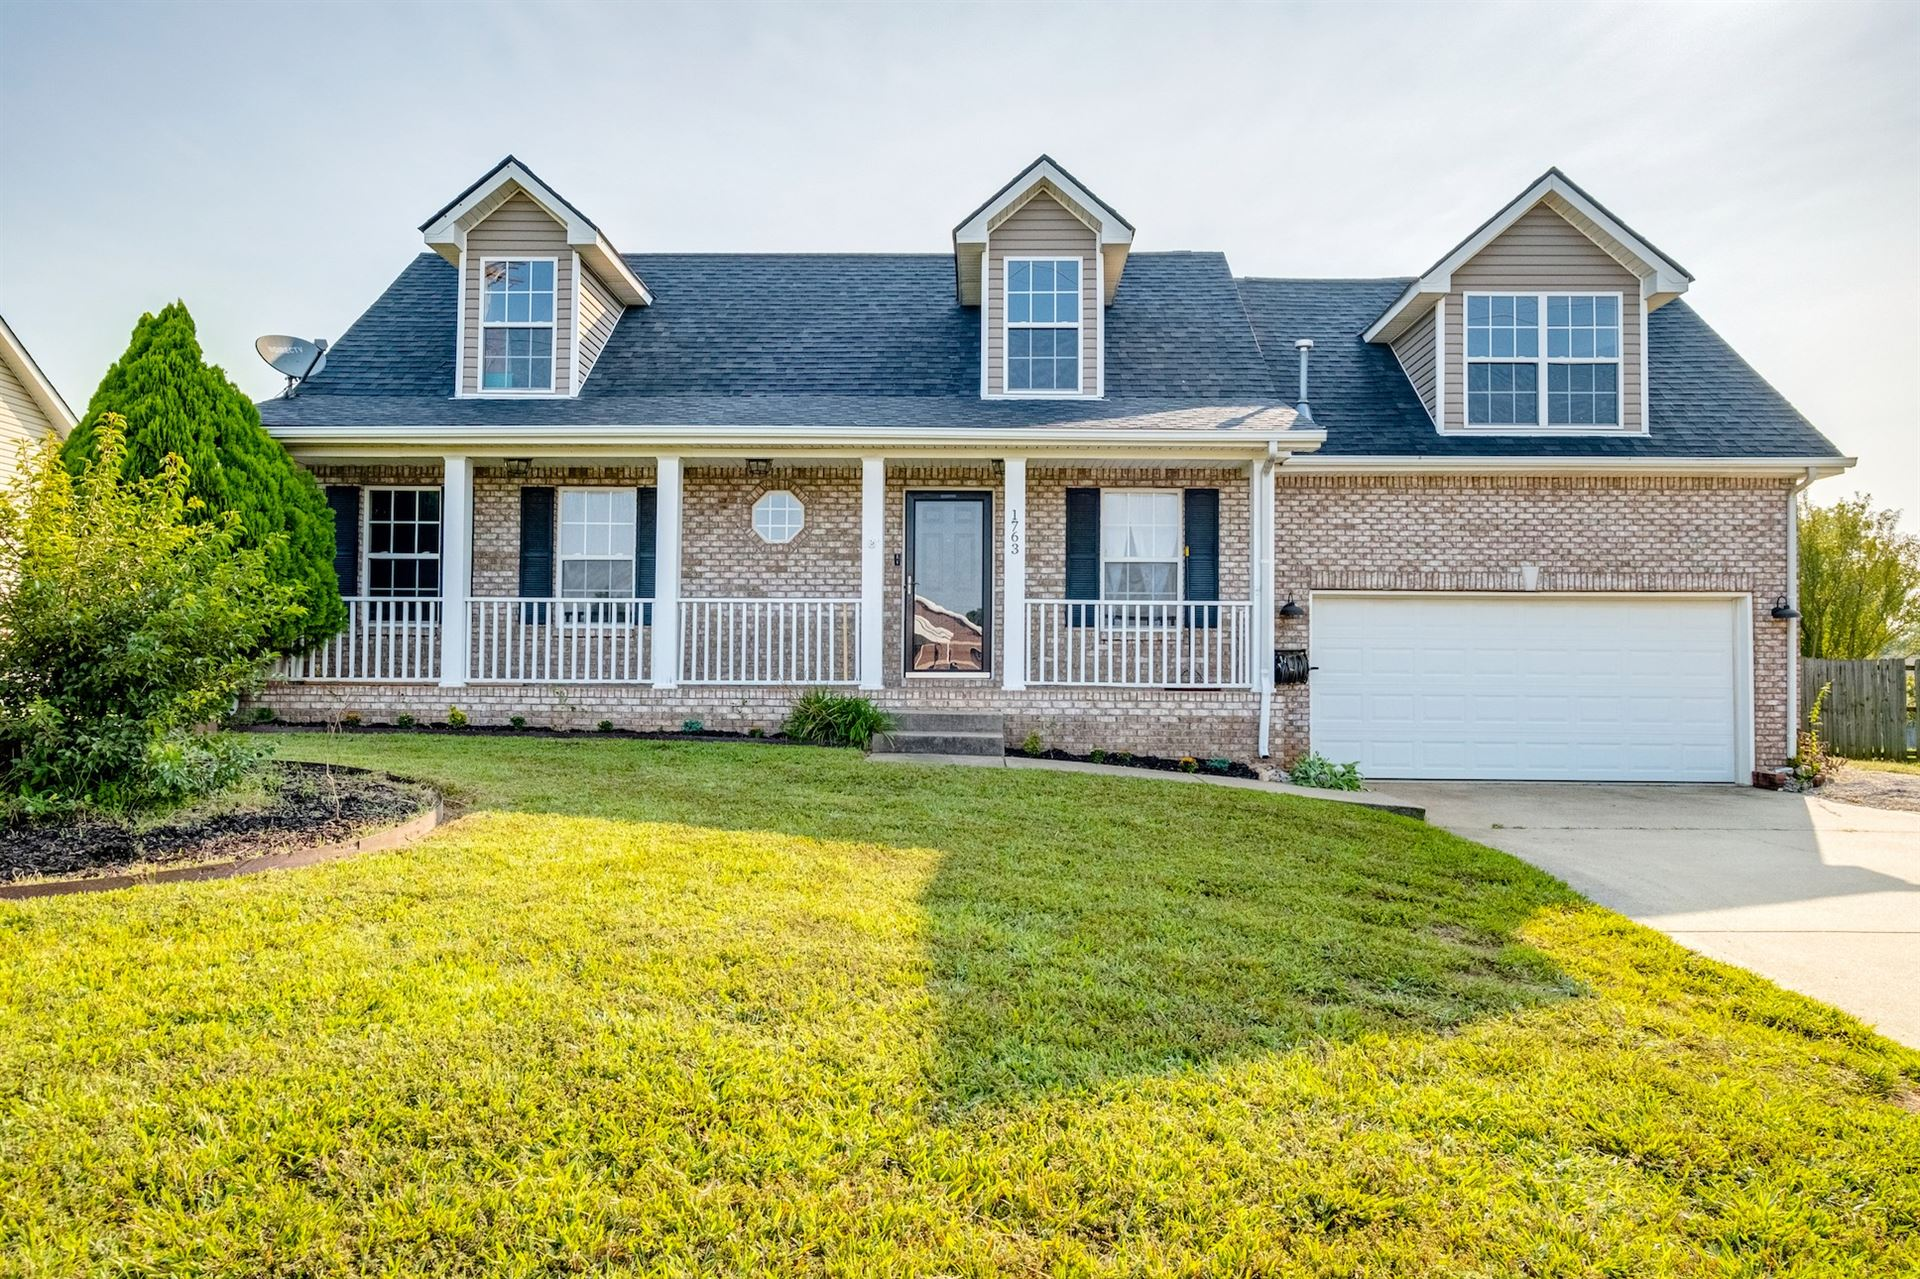 1763 Needmore Rd, Clarksville, TN 37042 - MLS#: 2188287